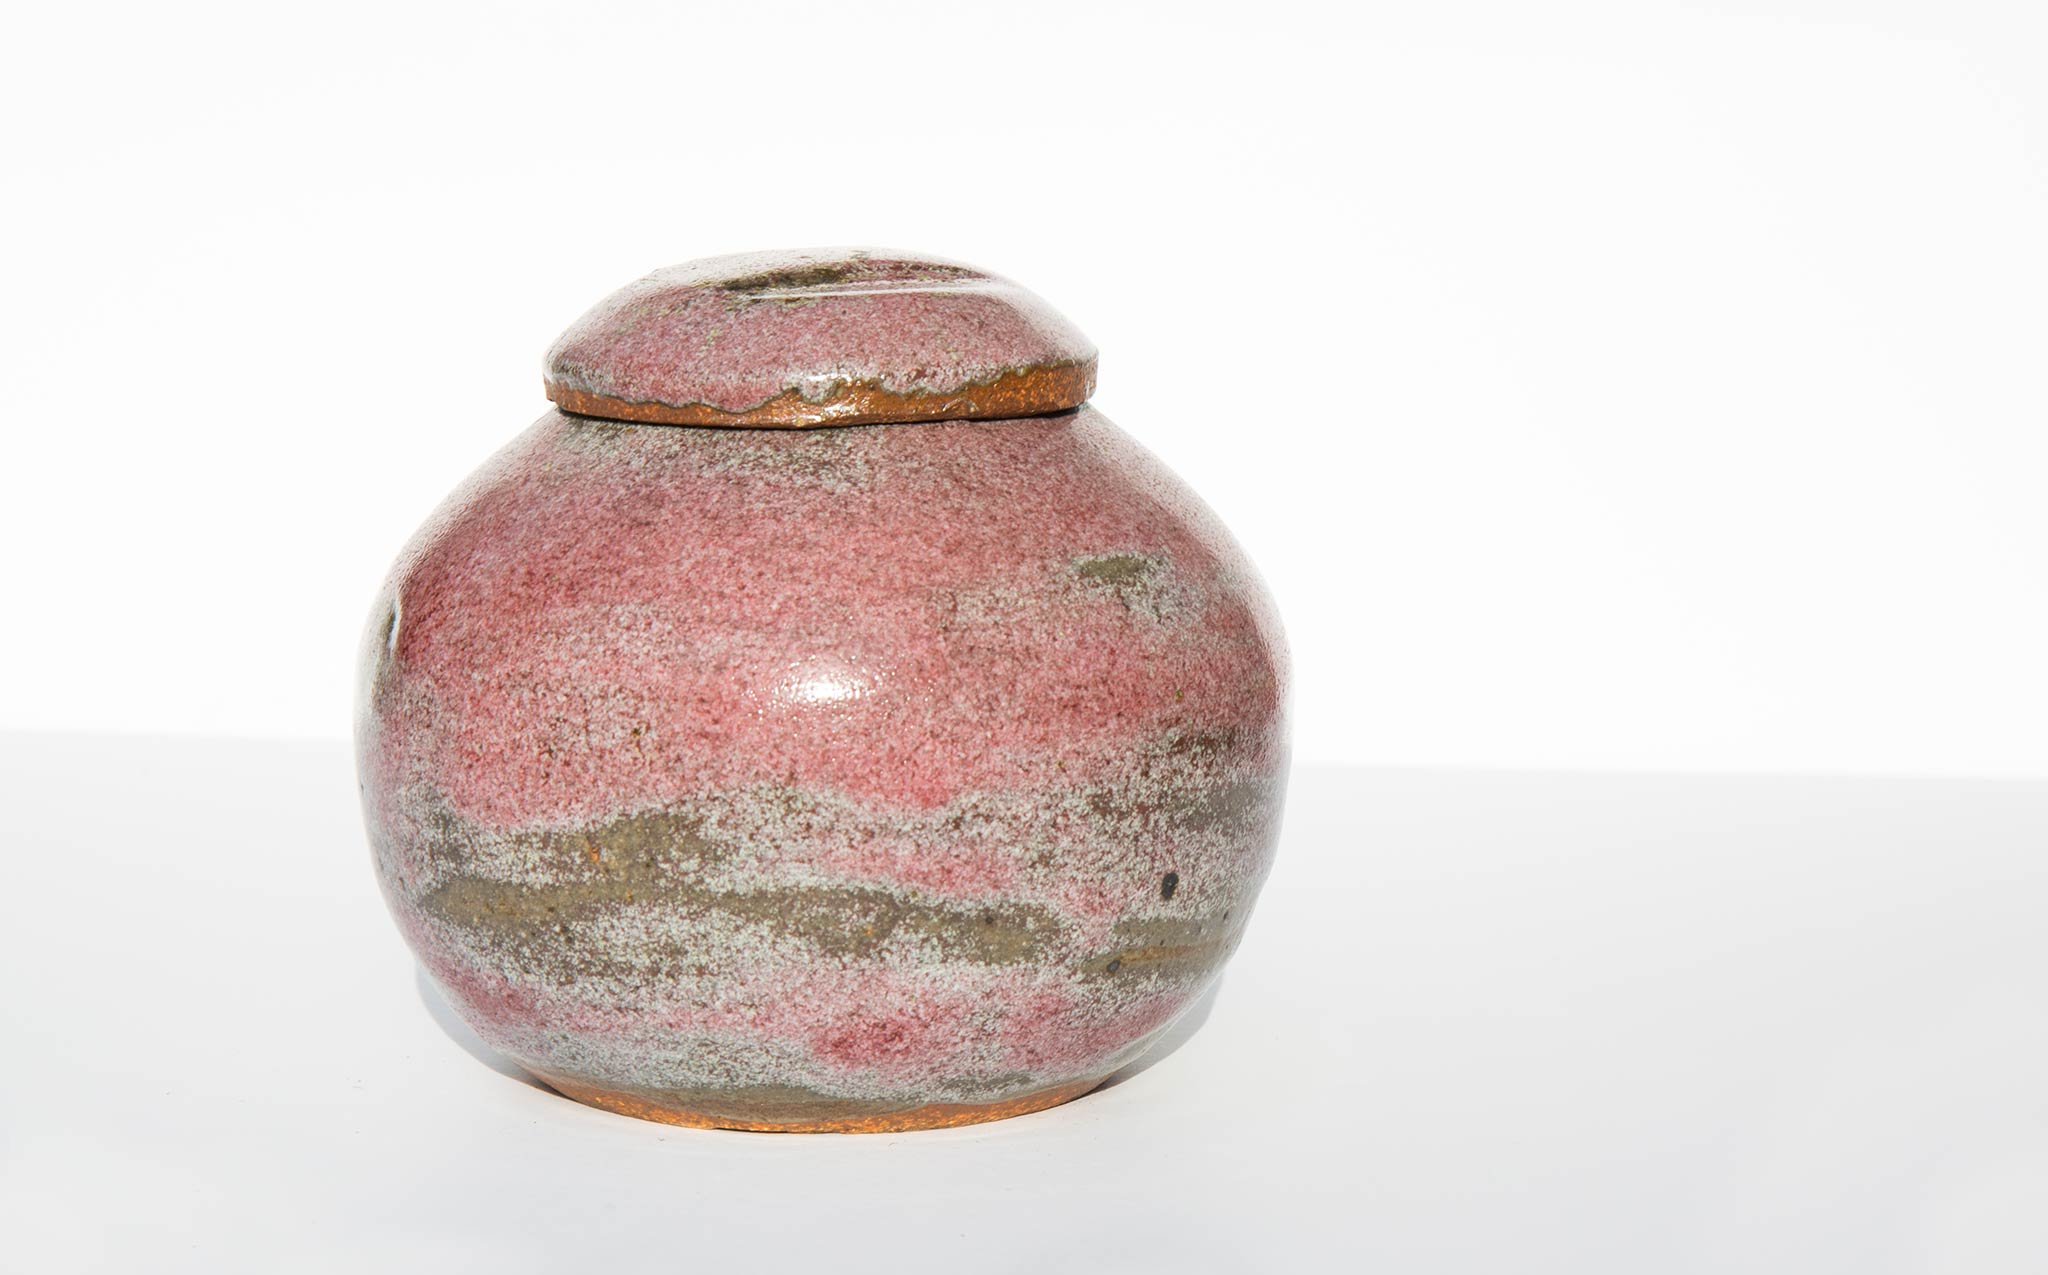 Rustic Blush Pottery Jar